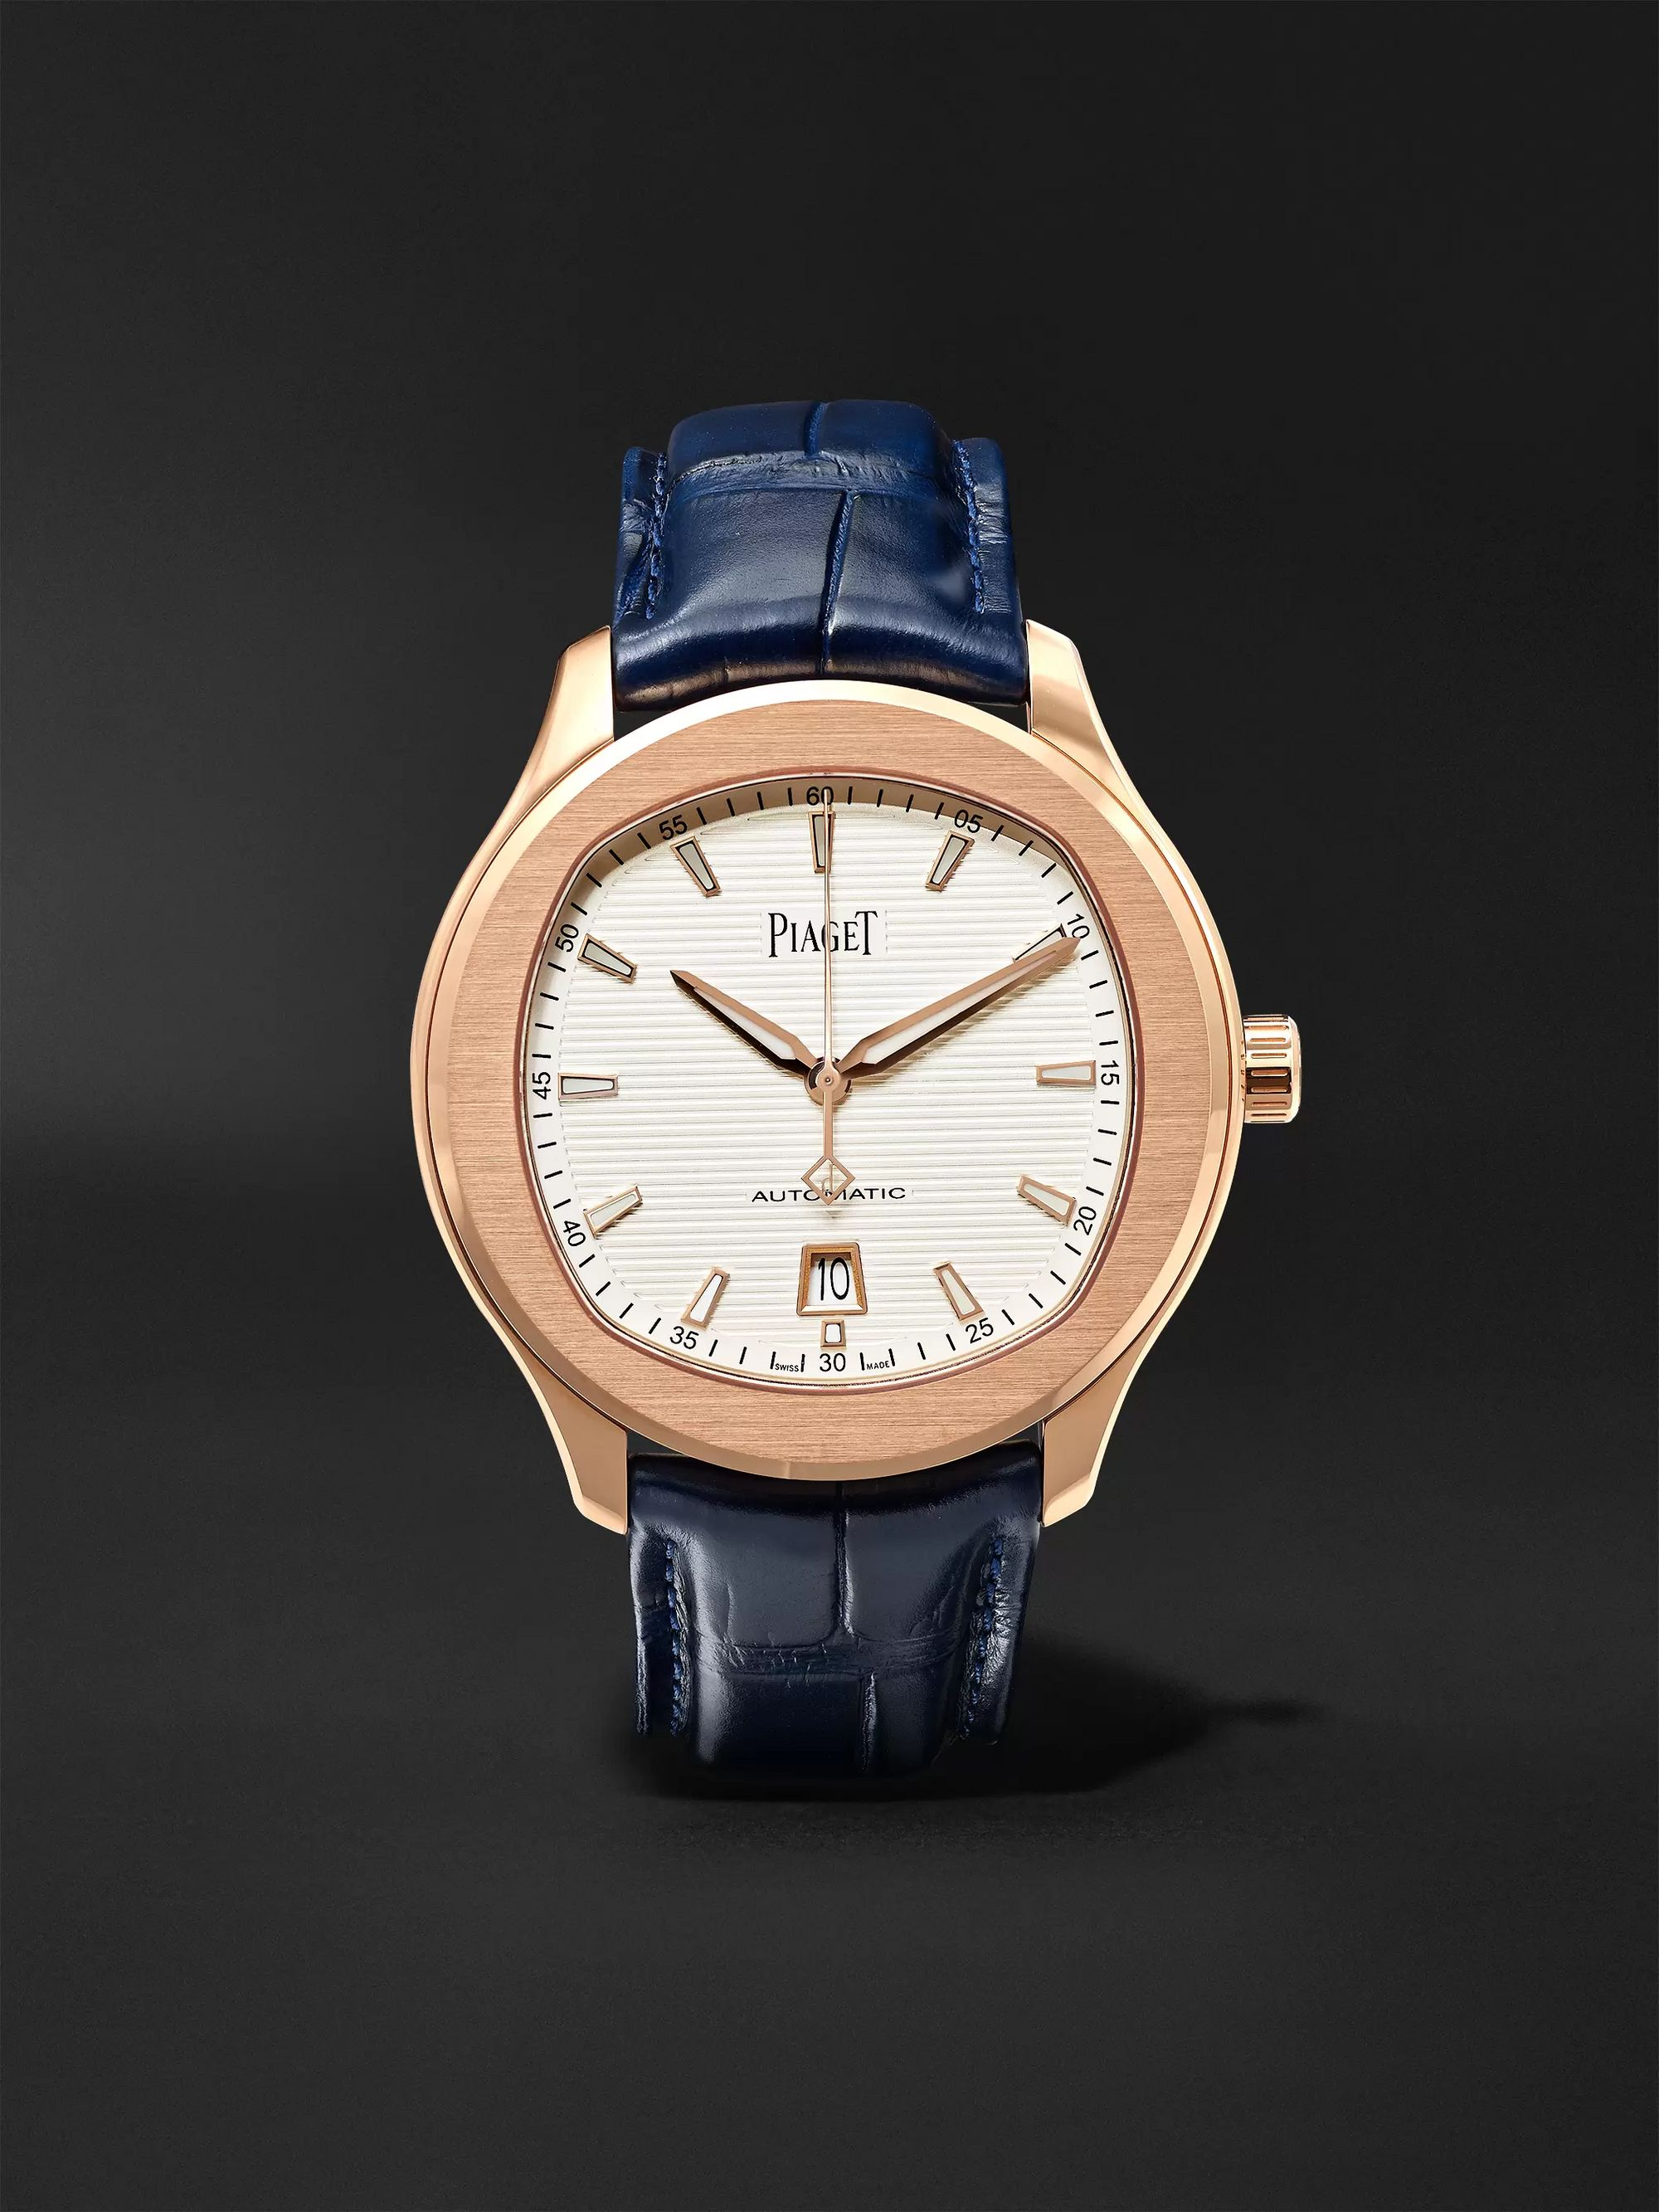 Piaget Polo S Automatic 42mm 18-Karat Rose Gold and Alligator Watch, Ref. No. G0A43010